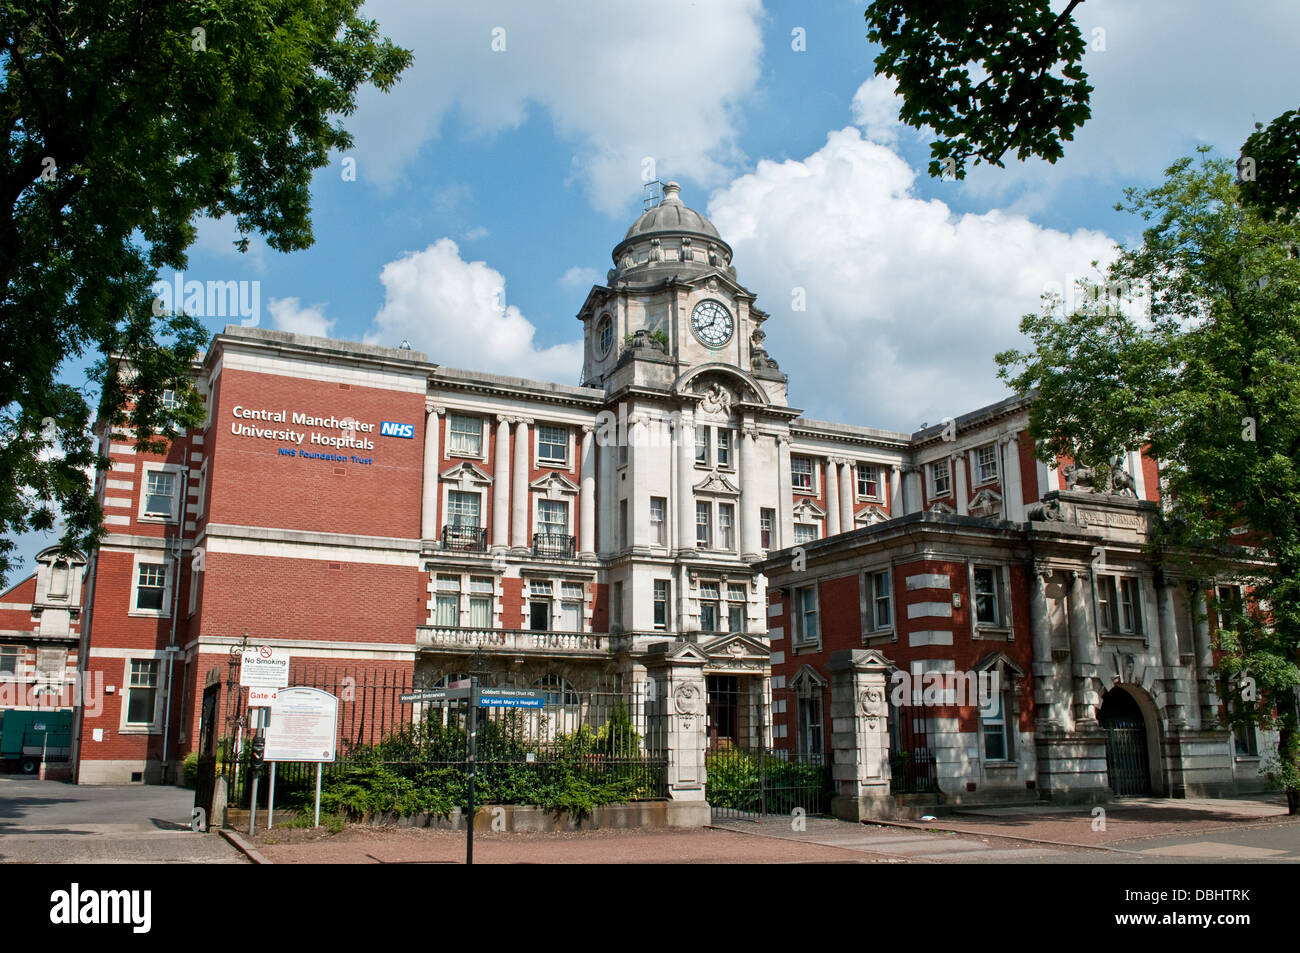 Central Manchester University Hospitals, Oxford Road, Manchester, UK - Stock Image